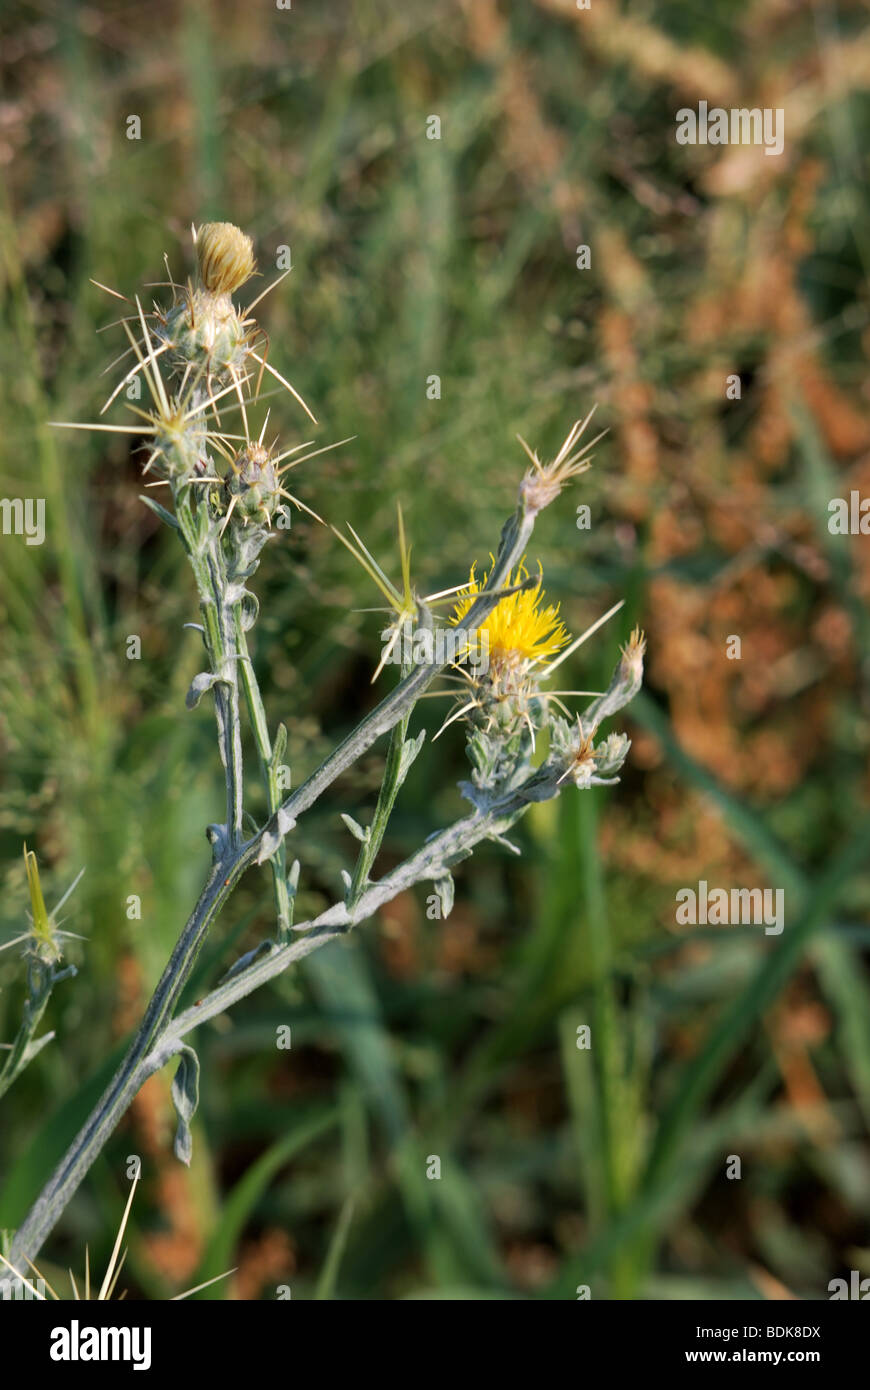 Yellow star-thistle is a noxious weed that can injure livestock and pets.  It grows in much of the United States - Stock Image